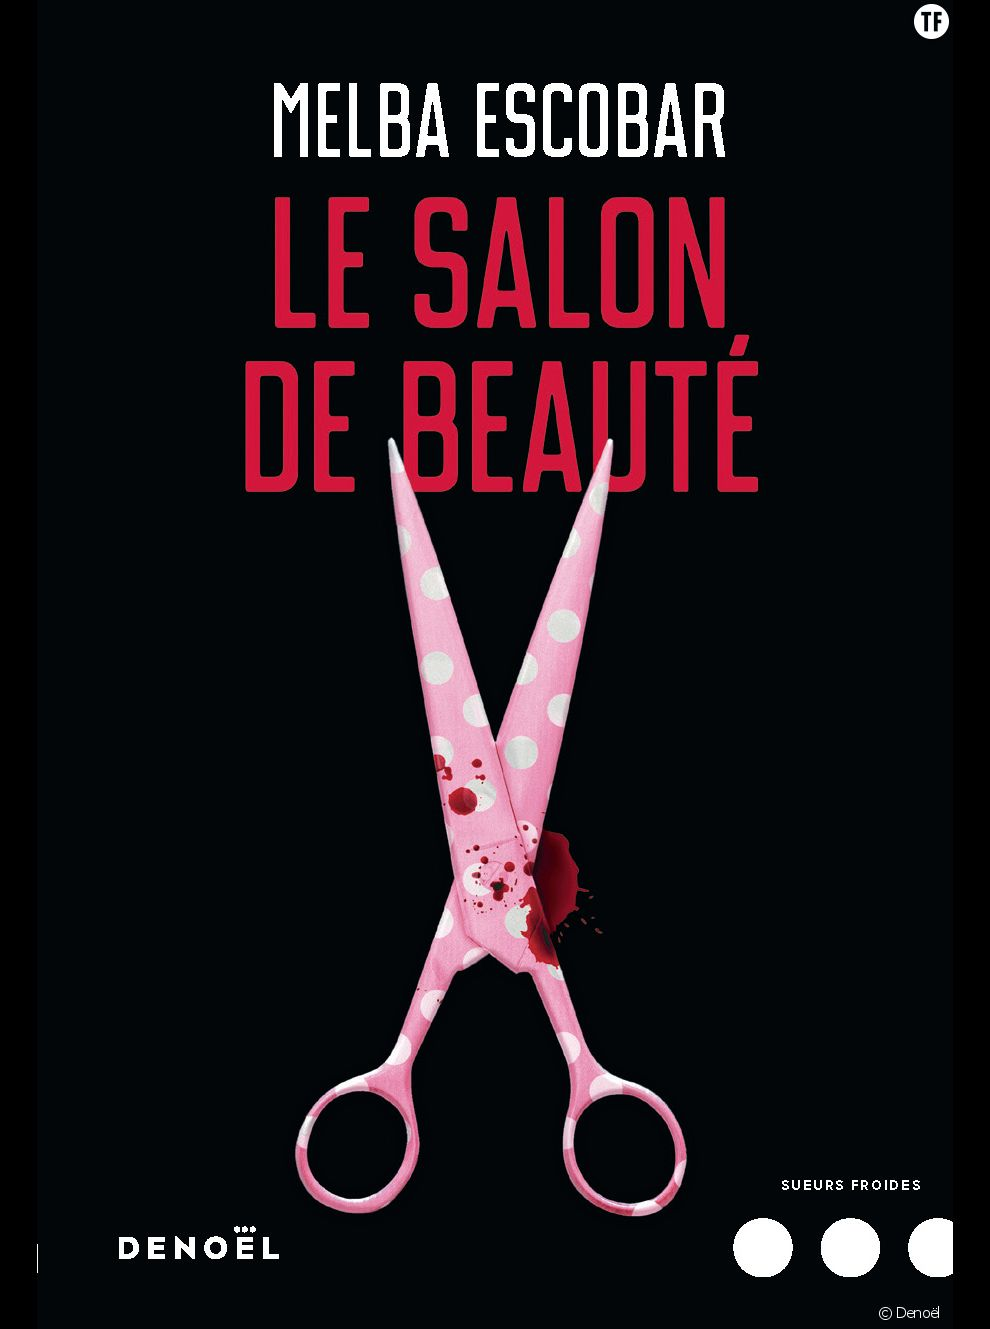 Le salon de beauté de Melba Escobar